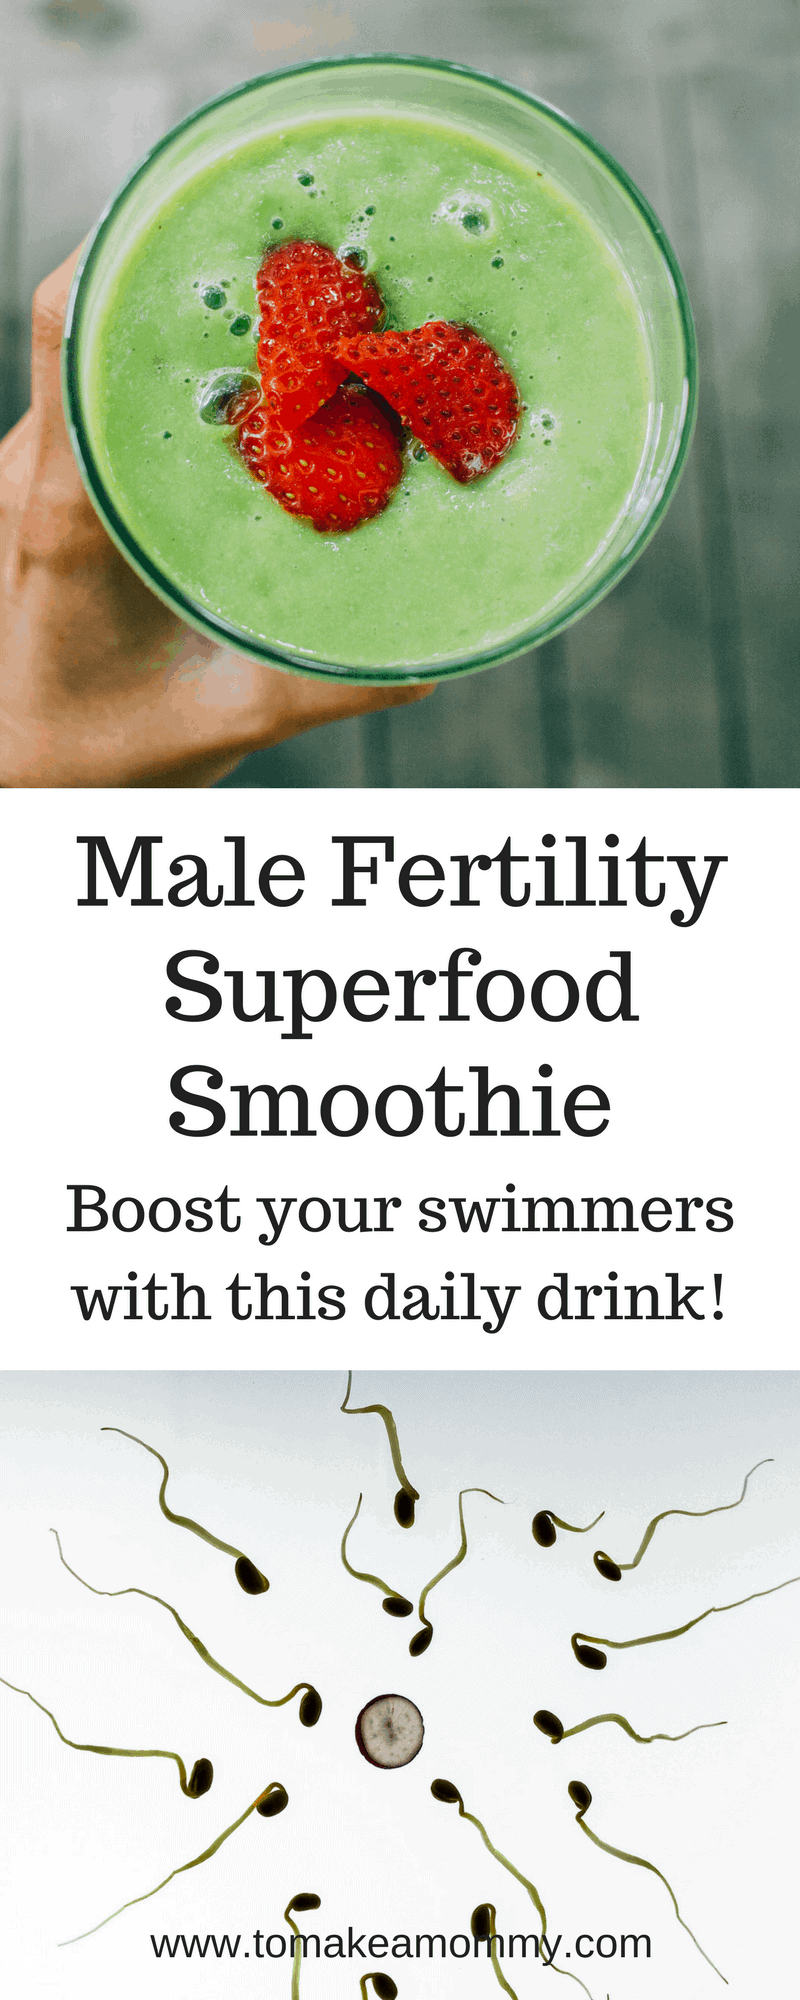 Ultimate Male Fertility Smoothie, Improve Sperm Count And